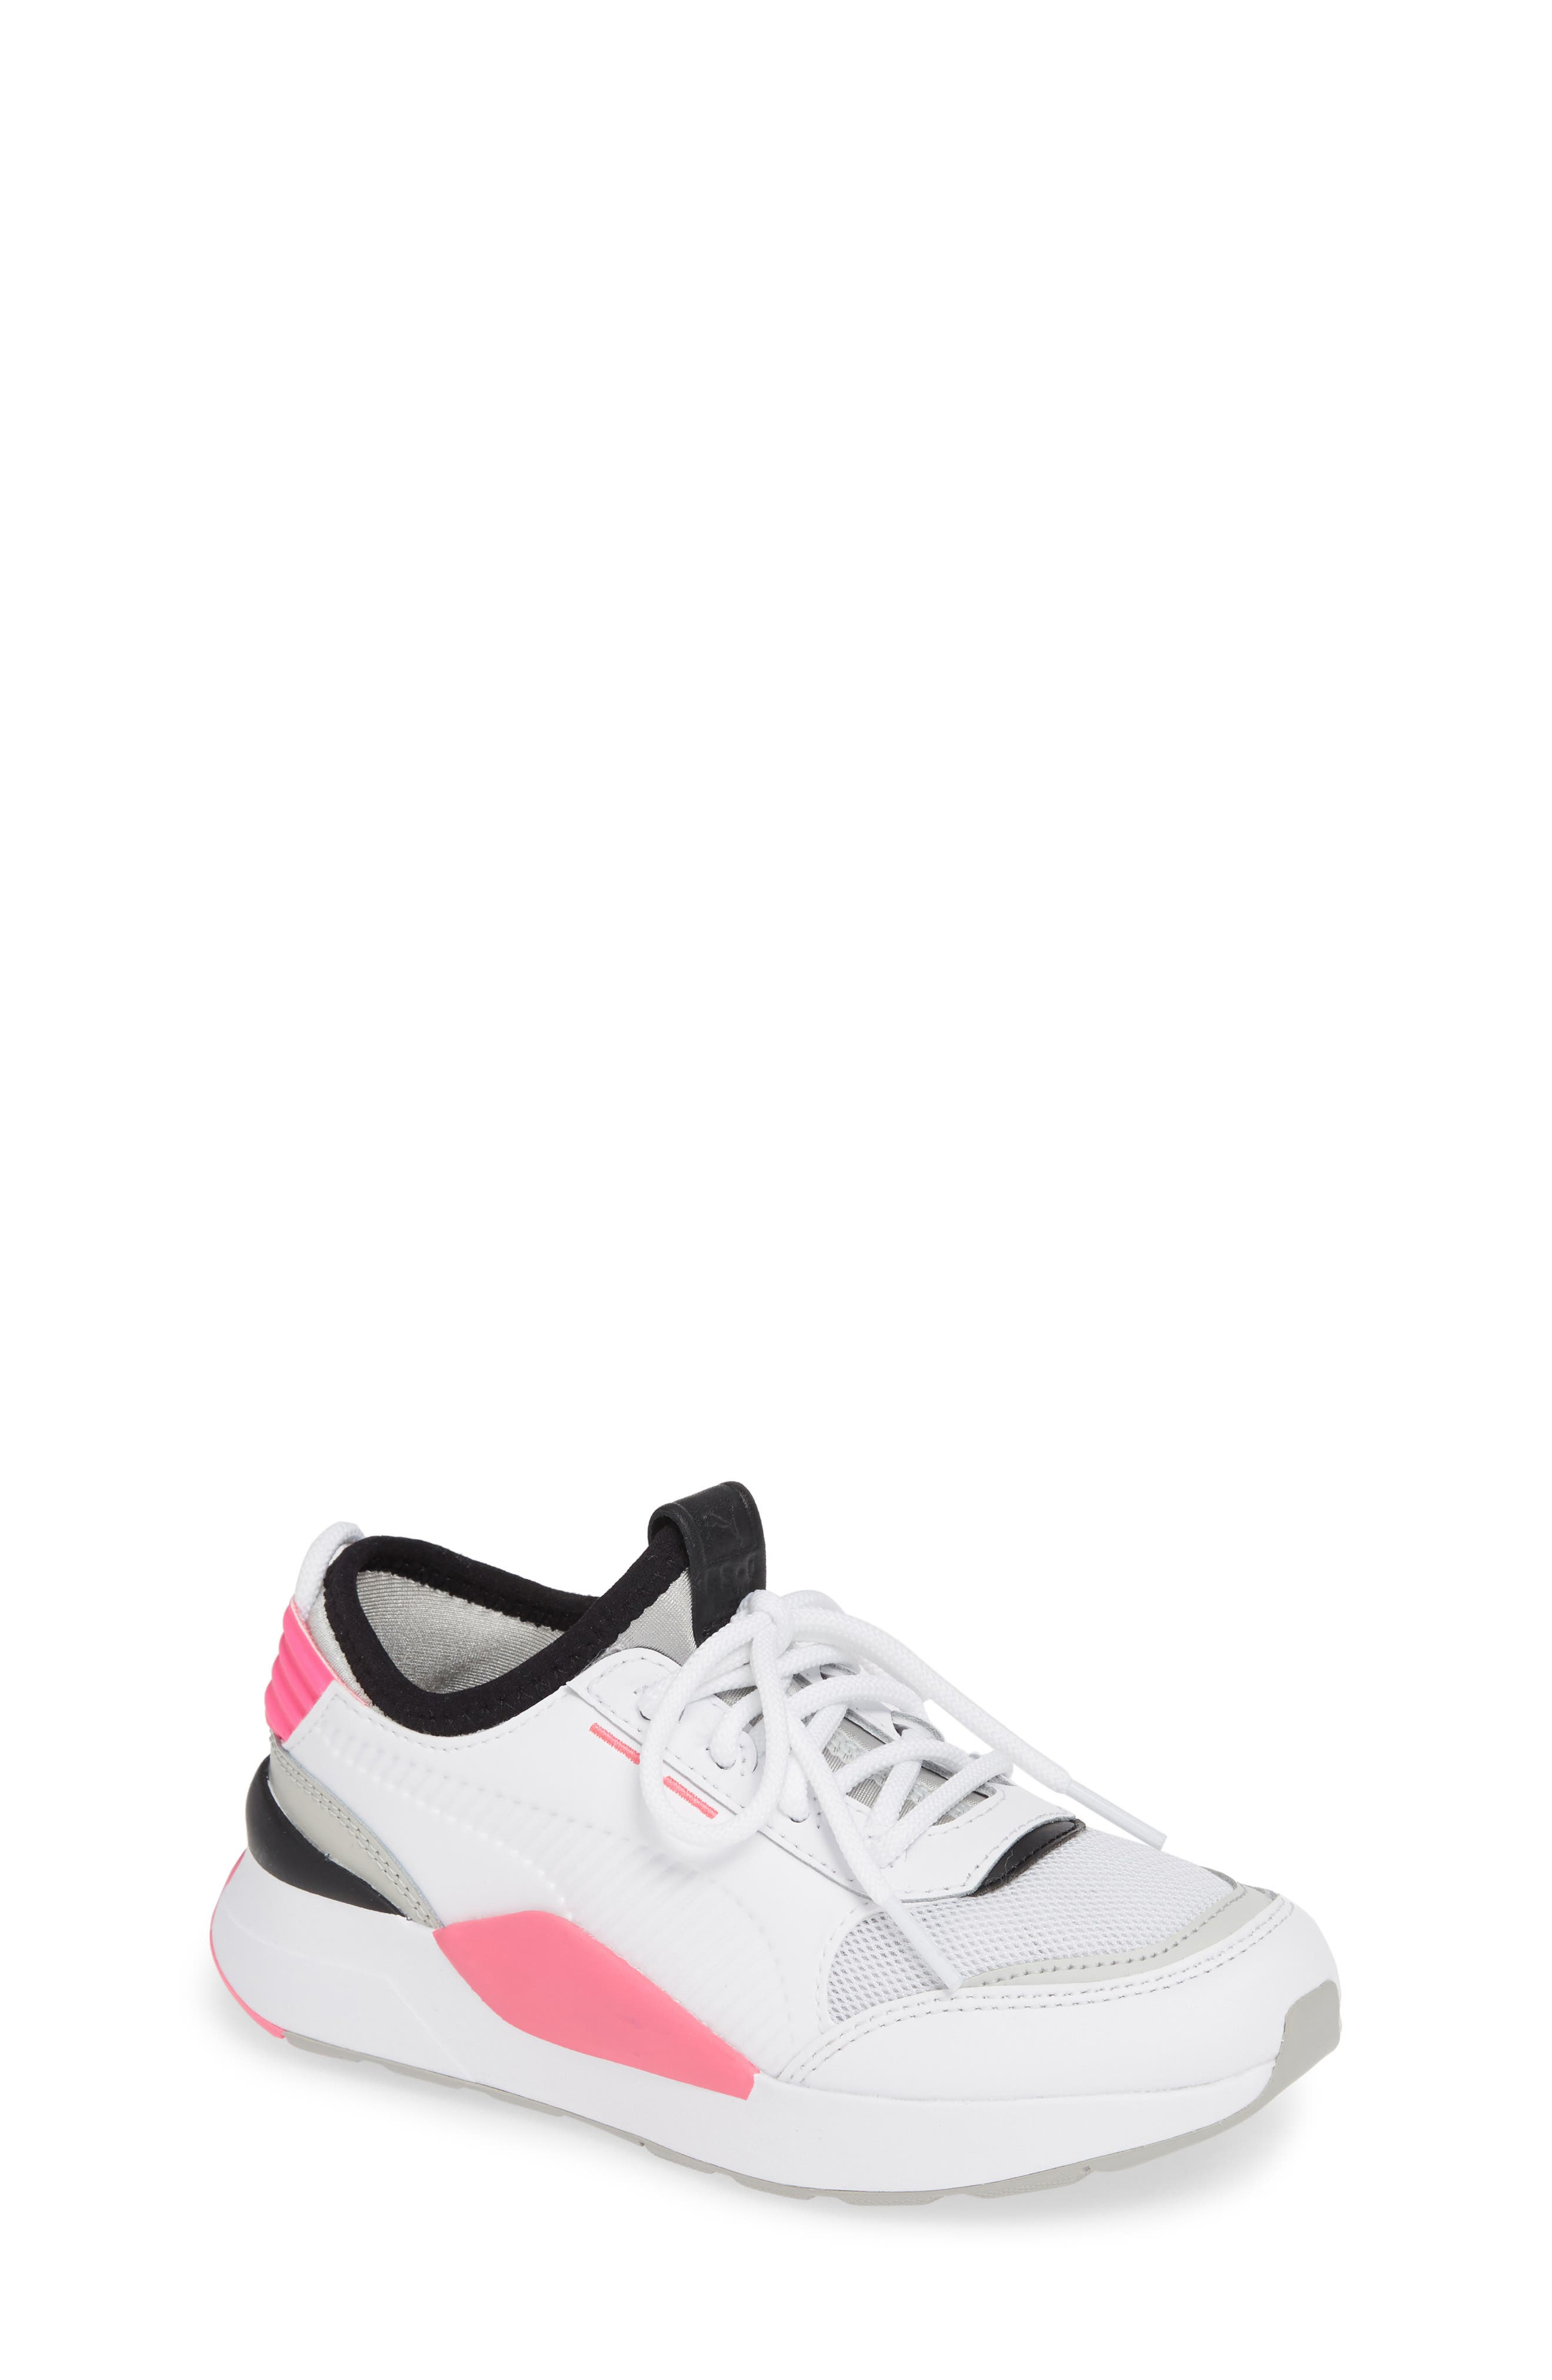 RS-0 Play Sneaker,                         Main,                         color, WHITE/ GRAY VIOLET